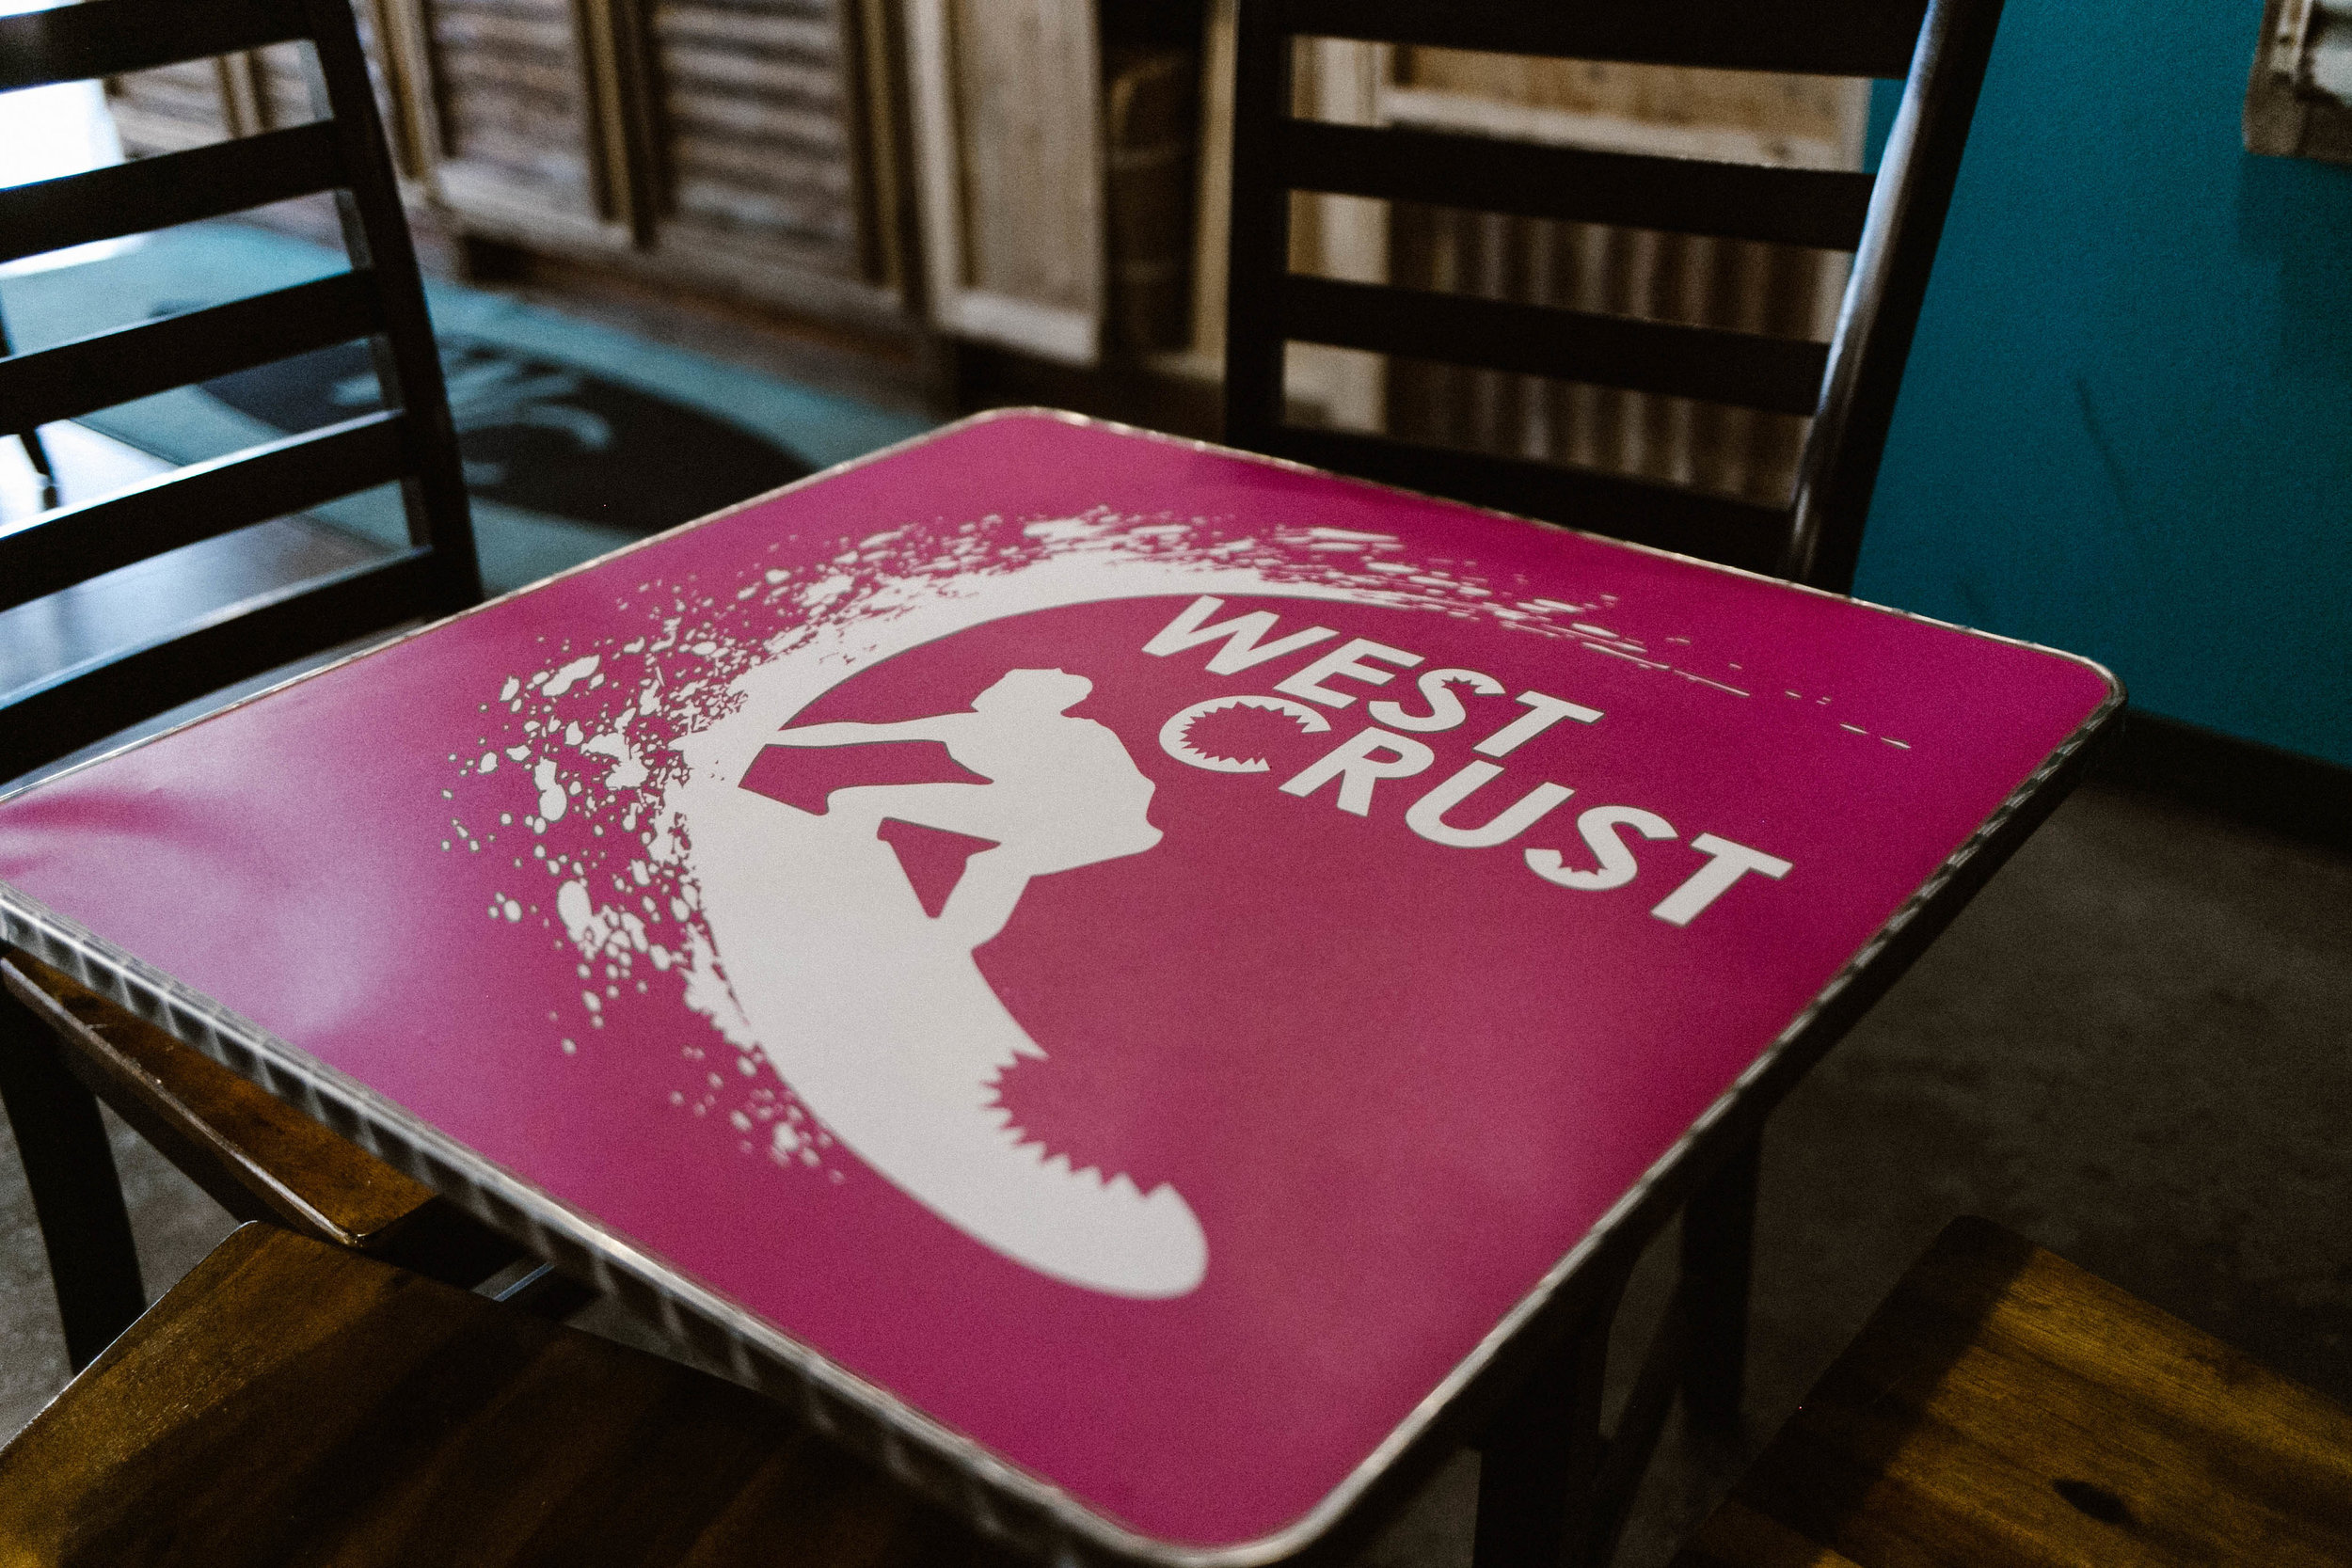 Store info - Phone Number - 806-300-0052Location - 116 W LOOP 289Social Media - FacebookInstagramWebsite -http://westcrust.com/ Store Hours - Monday - Thursday 11AM - 9PMFriday - Saturday 11am -10pmSunday 11am- 8pm